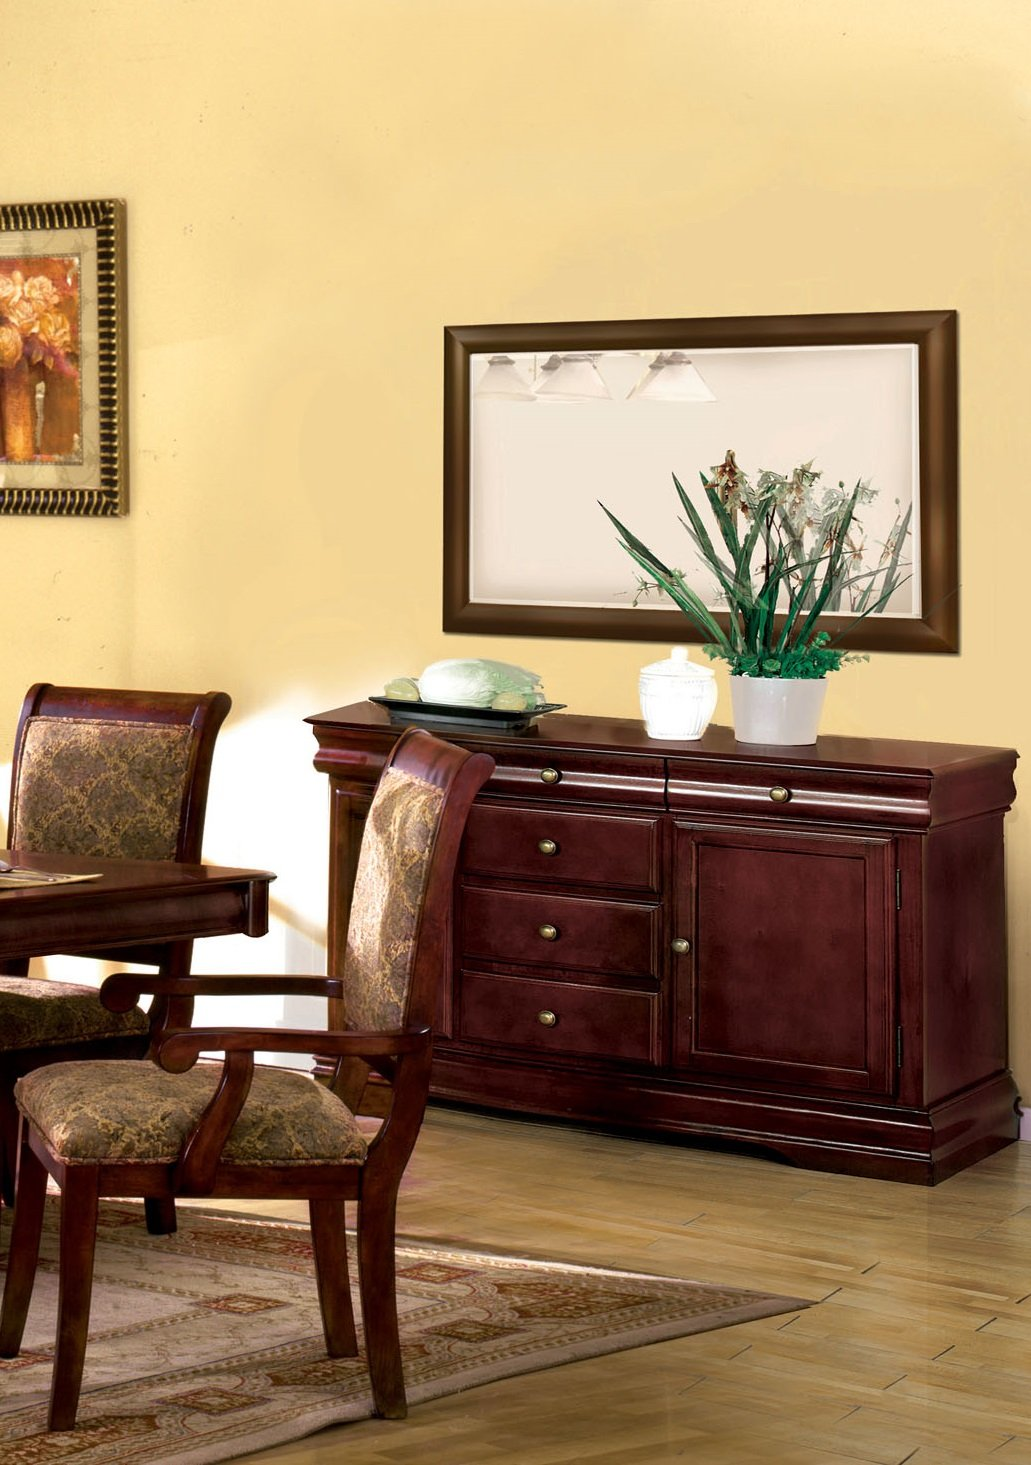 Furniture of America Bernette Framed Wall-Mounted Mirror, Antique Cherry Finish by Furniture of America (Image #2)